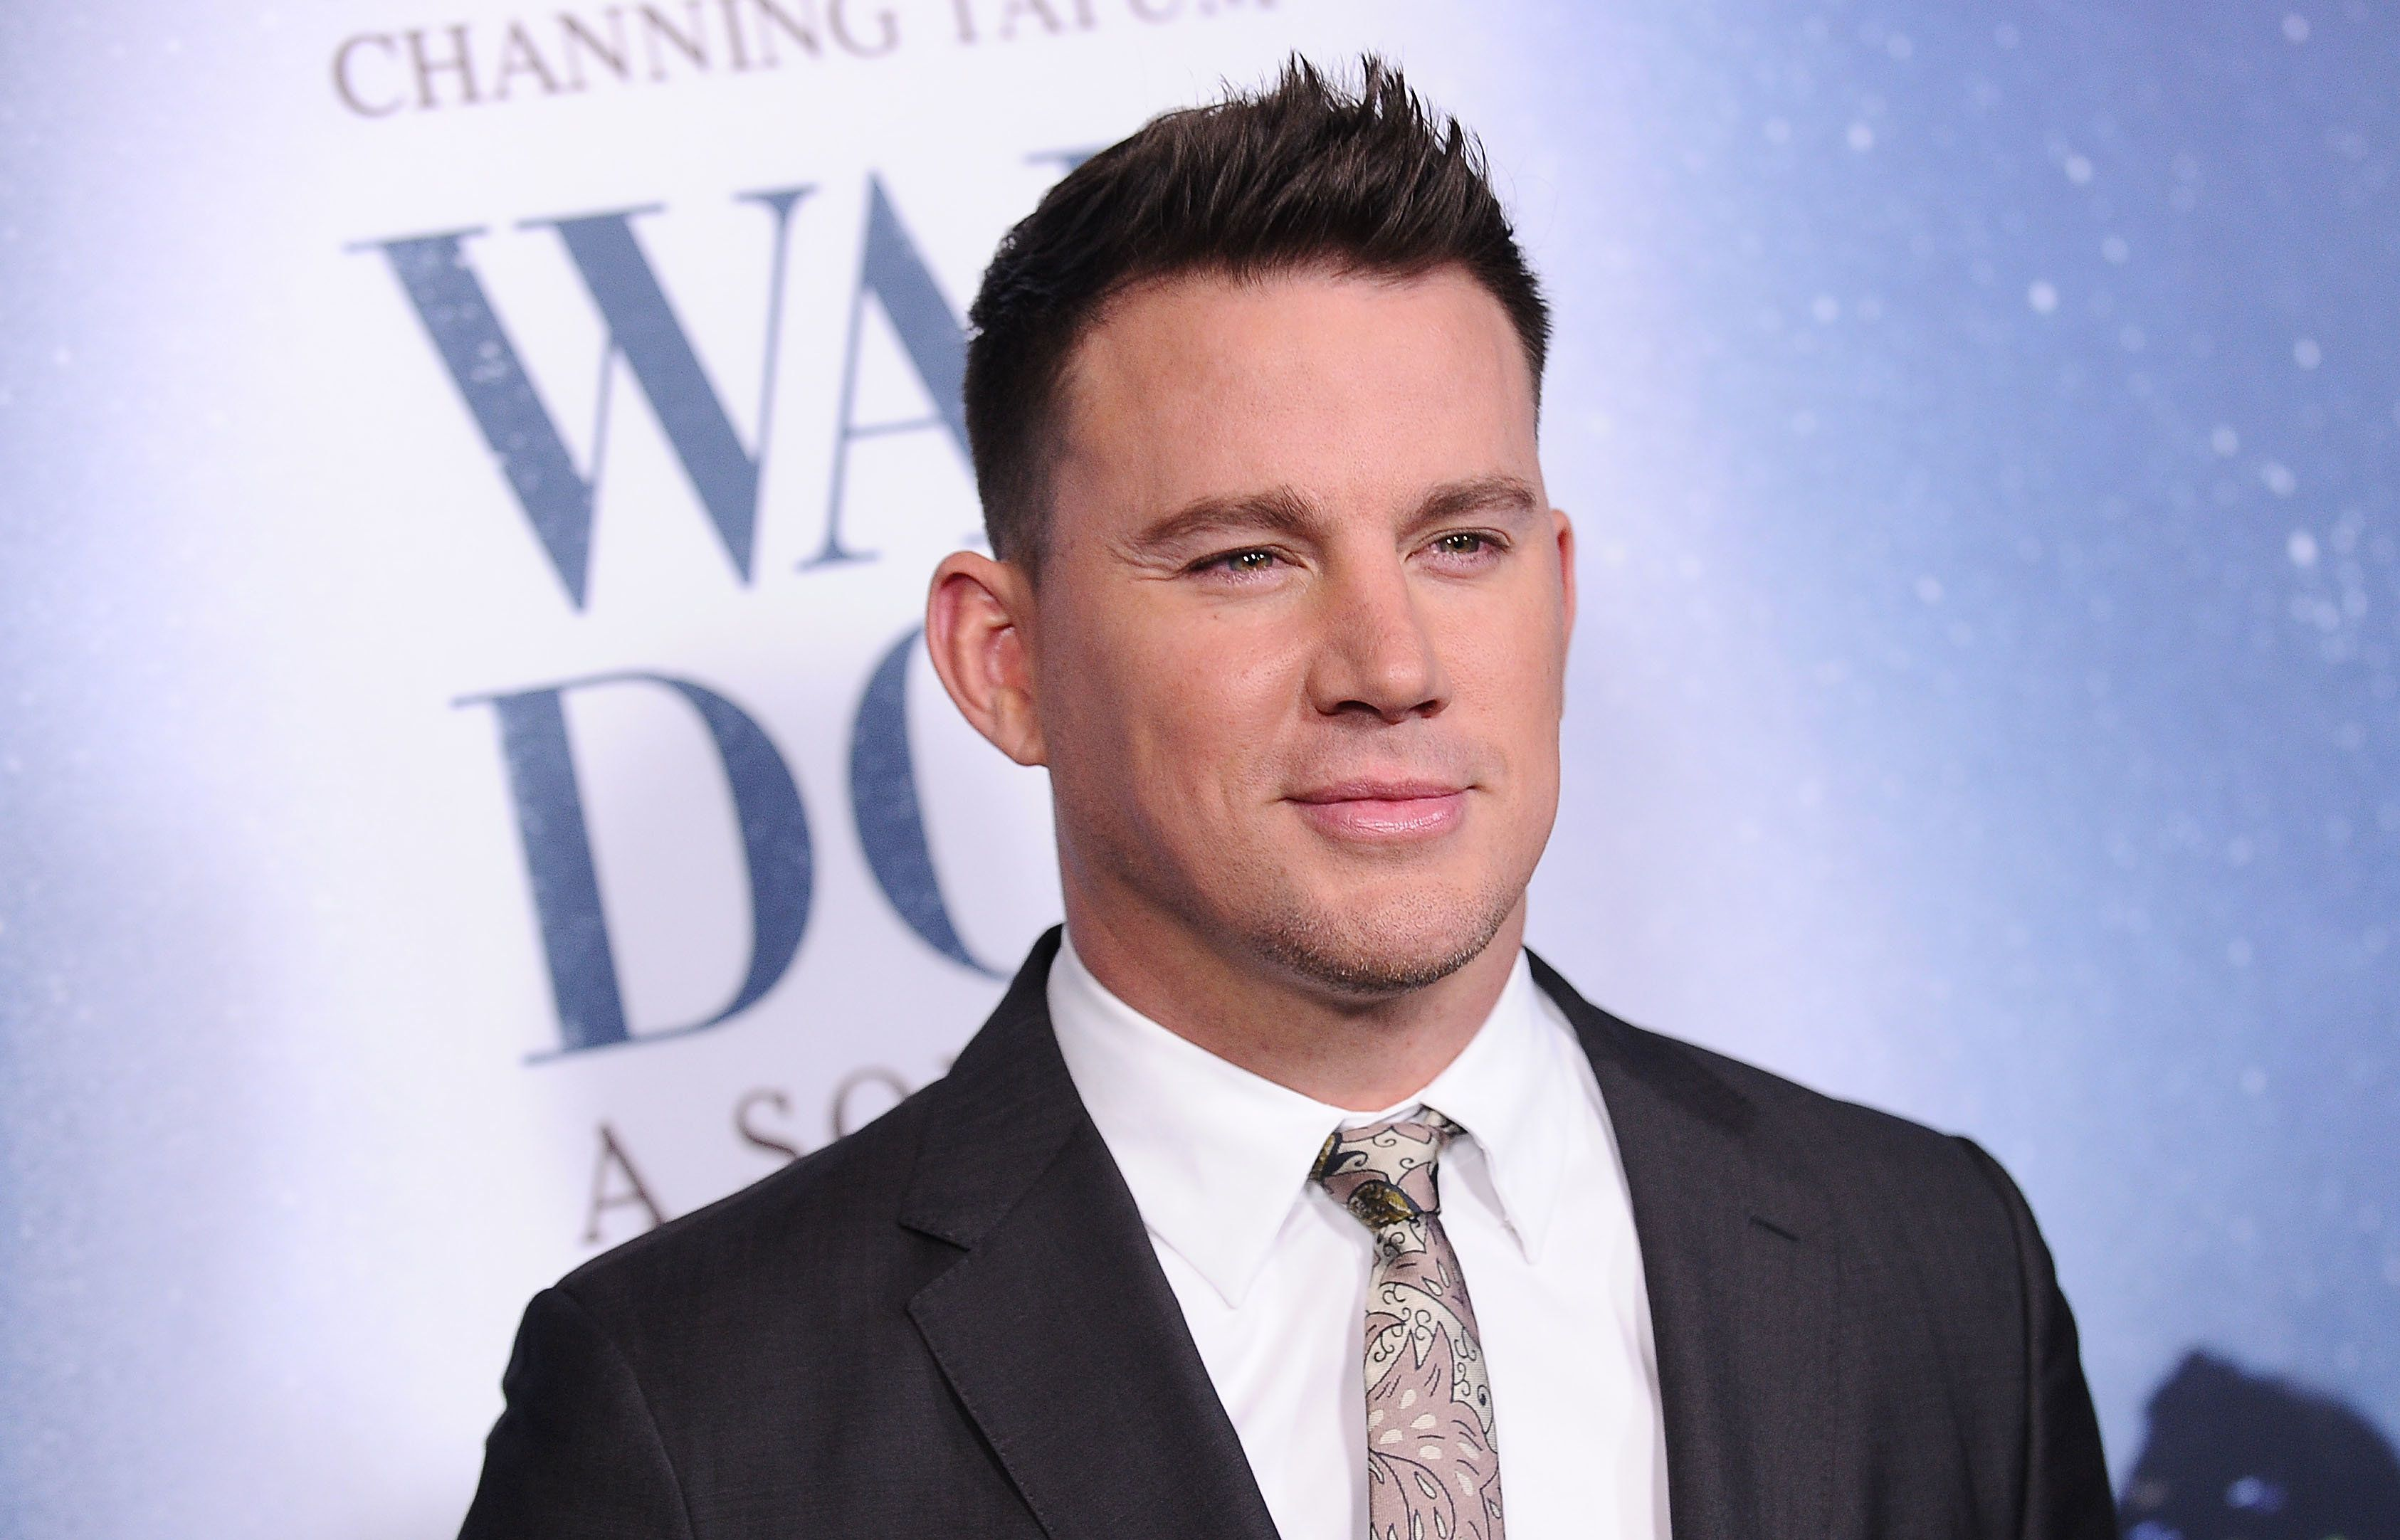 LOS ANGELES, CA - NOVEMBER 06:  Channing Tatum attends the premiere of 'War Dog: A Soldier's Best Friend' at Directors Guild Of America on November 6, 2017 in Los Angeles, California.  (Photo by Jason LaVeris/FilmMagic)